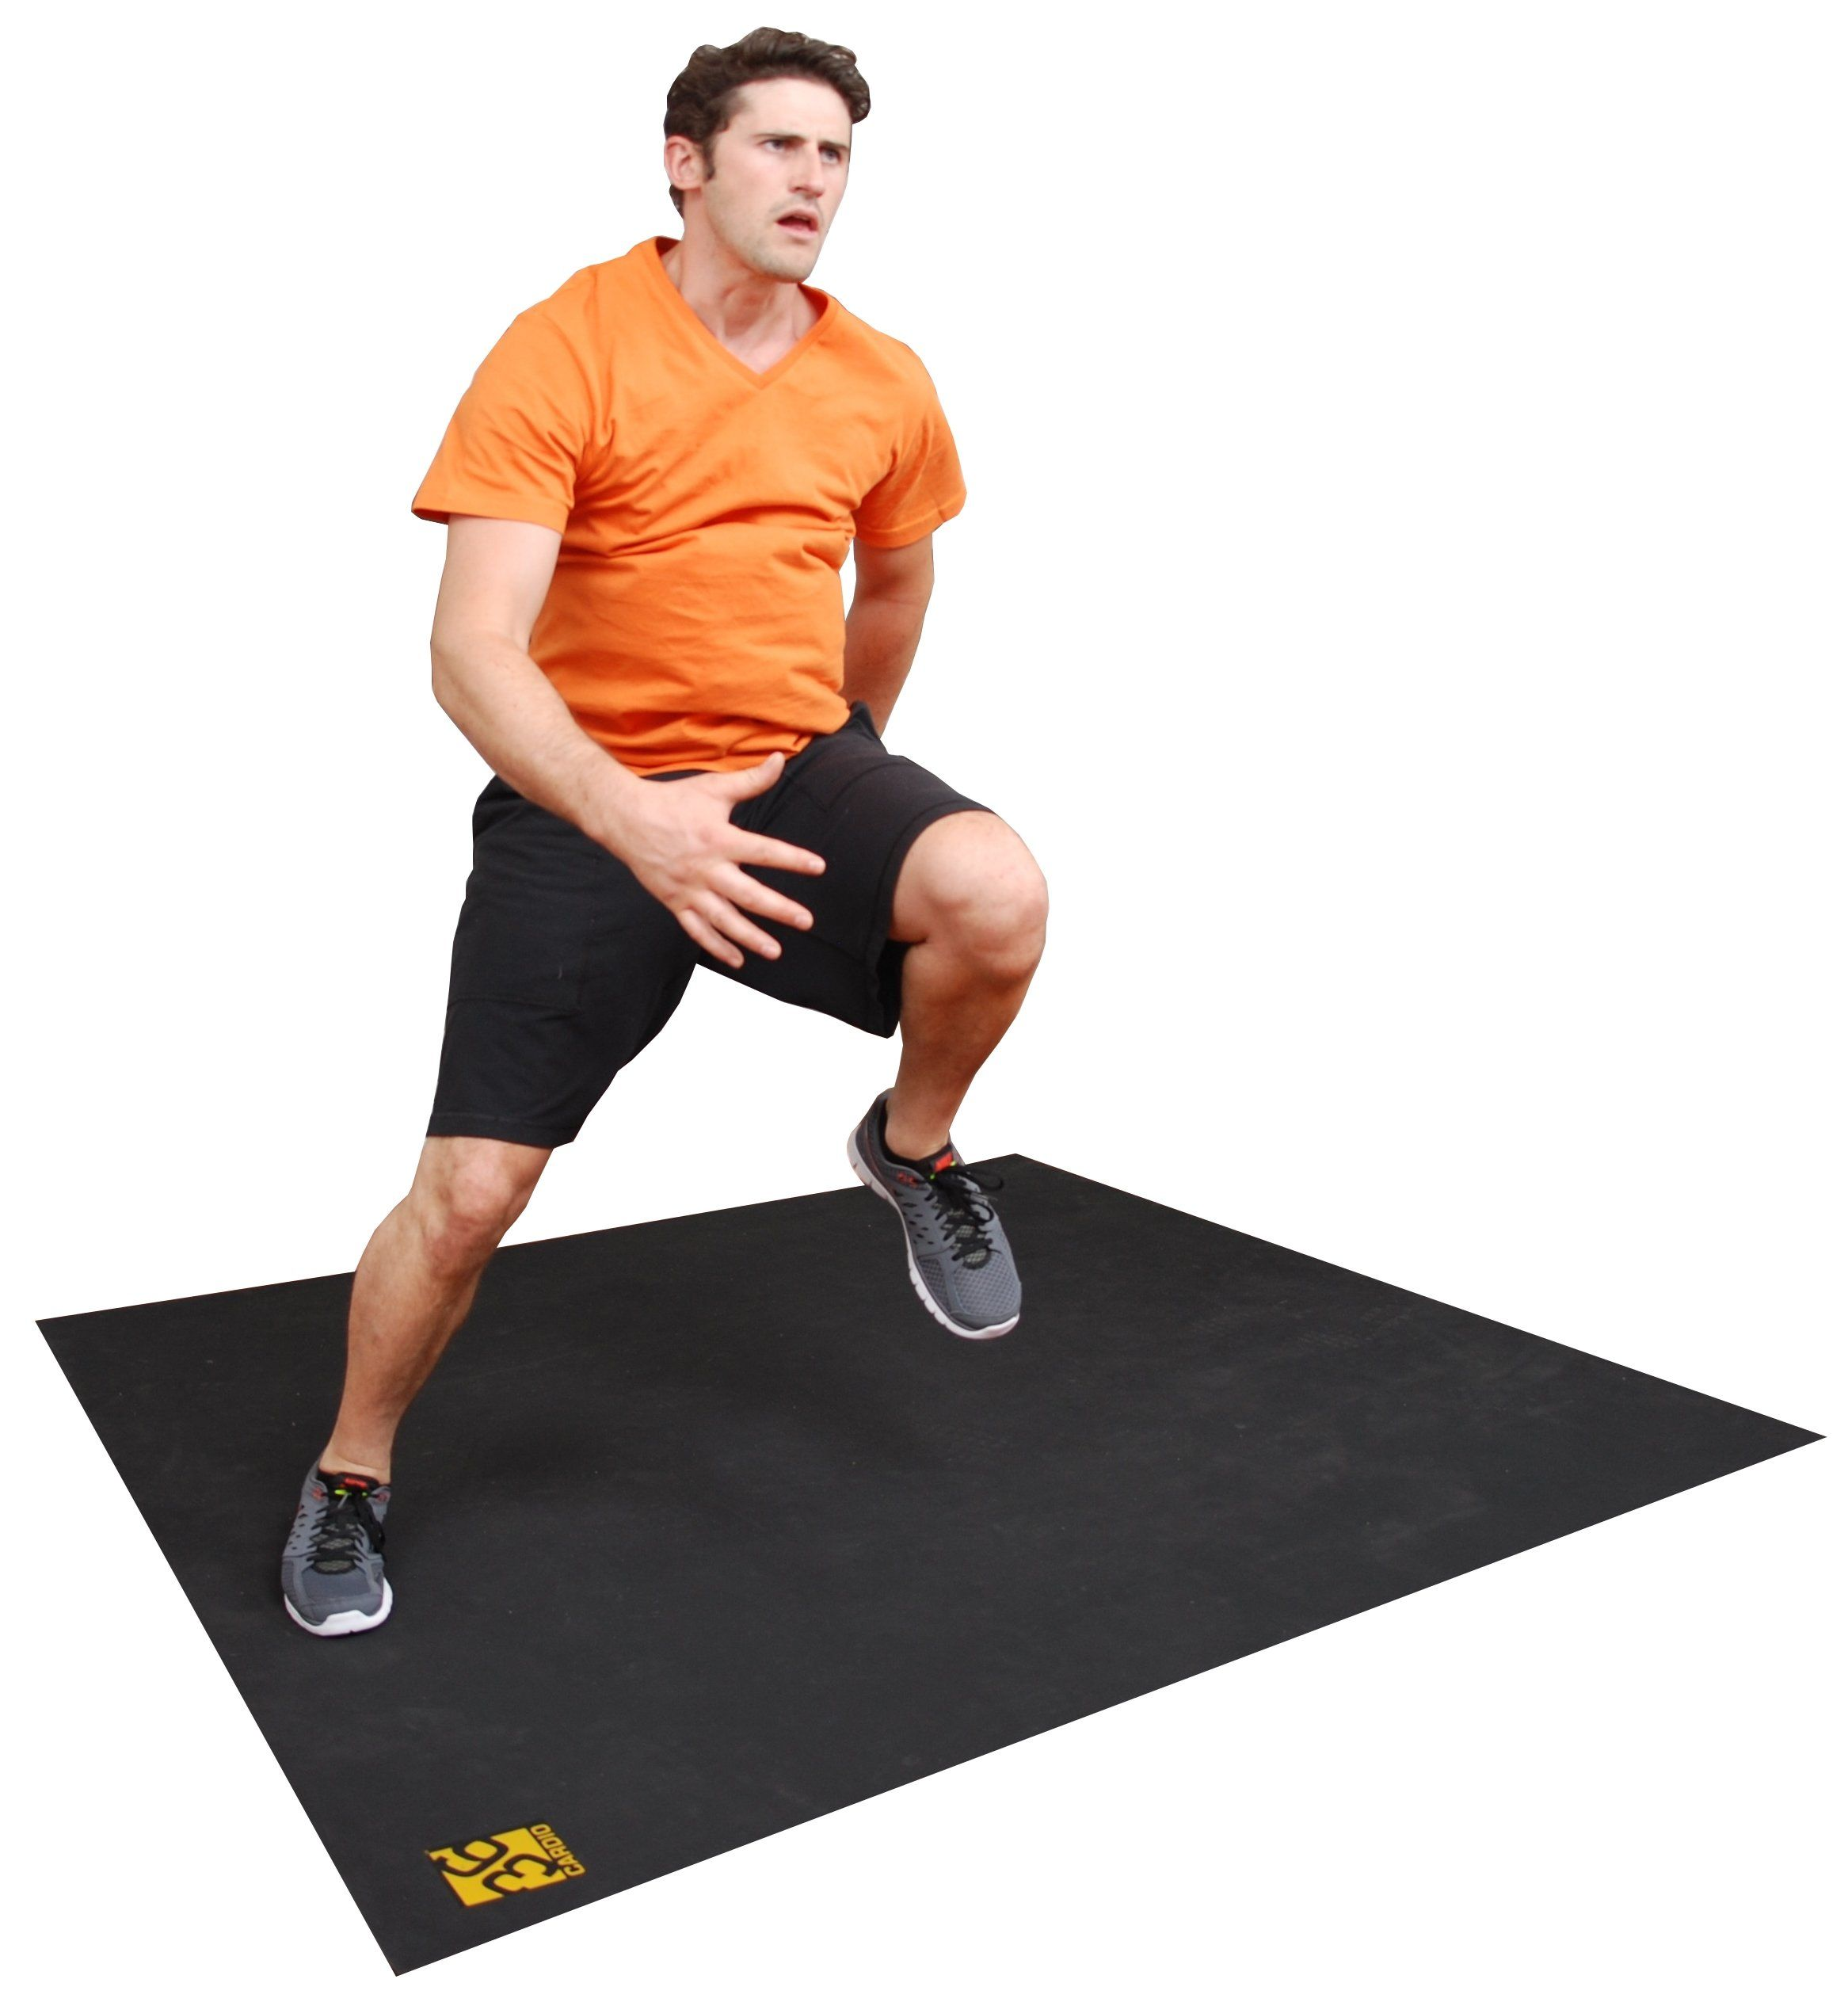 fitness rubber tuf flexi workout escape gym mats uk res flooring